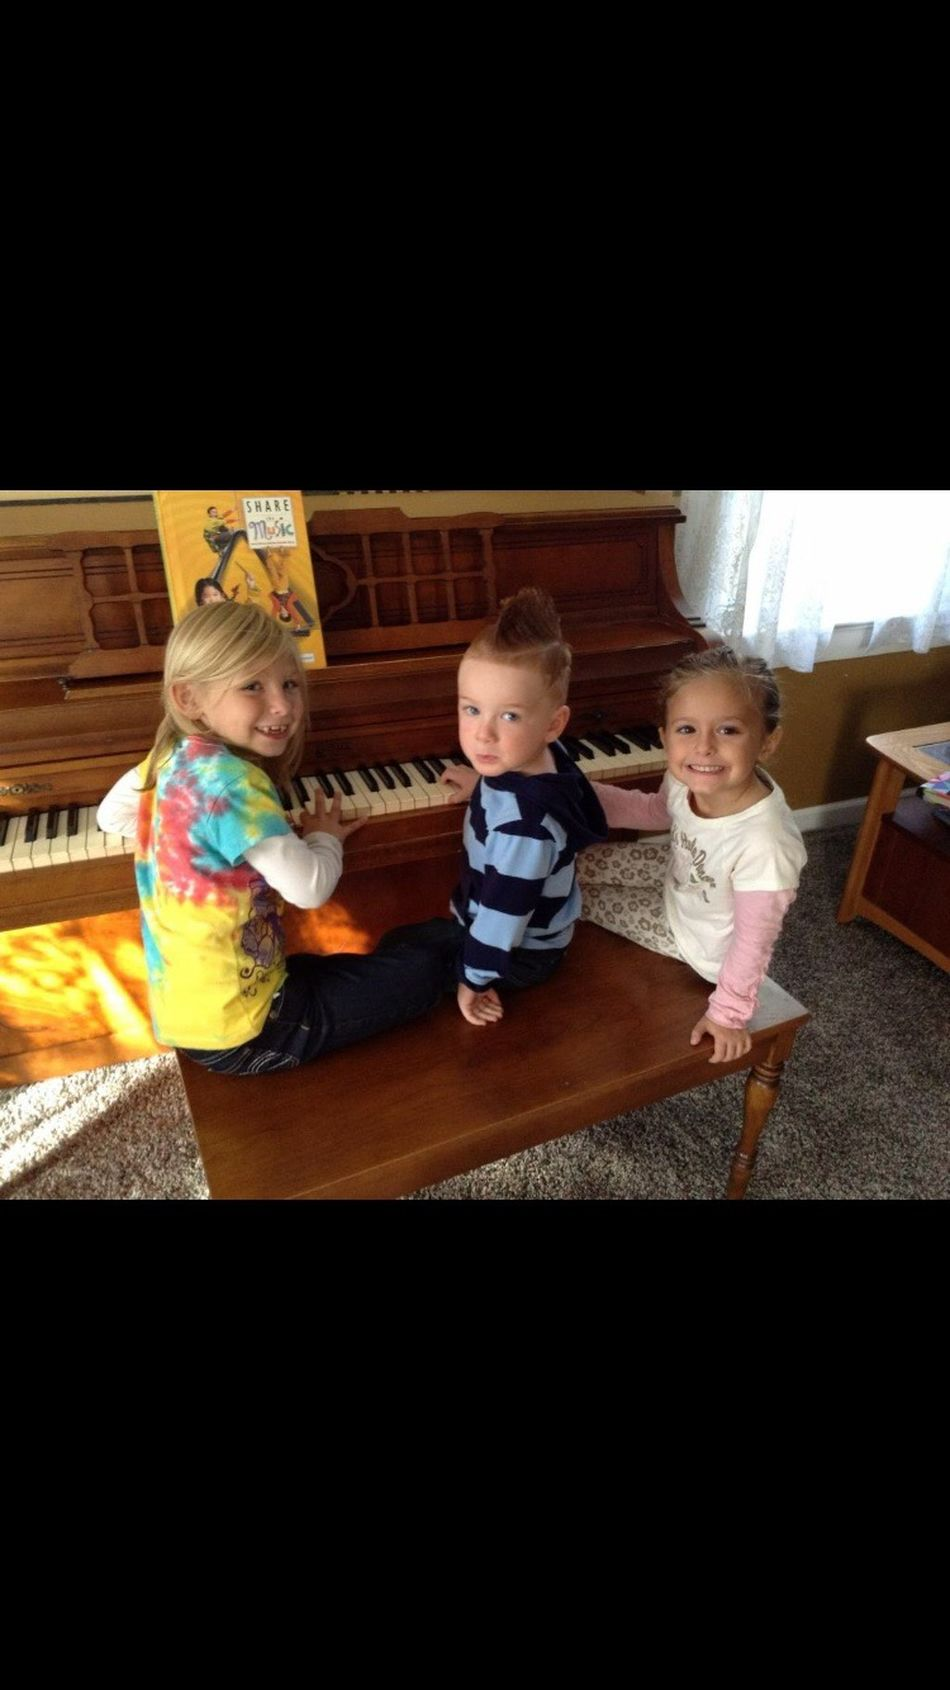 Piano Moments Childhood Casual Clothing Full Length Domestic Animals One Animal Baby Indoors  Food Animal Themes Illuminated Babyhood People Mammal Day Family Time Cousins ❤ Mohawk Forever Young Pianos For Peace Music Together Family Matters Piano Moments